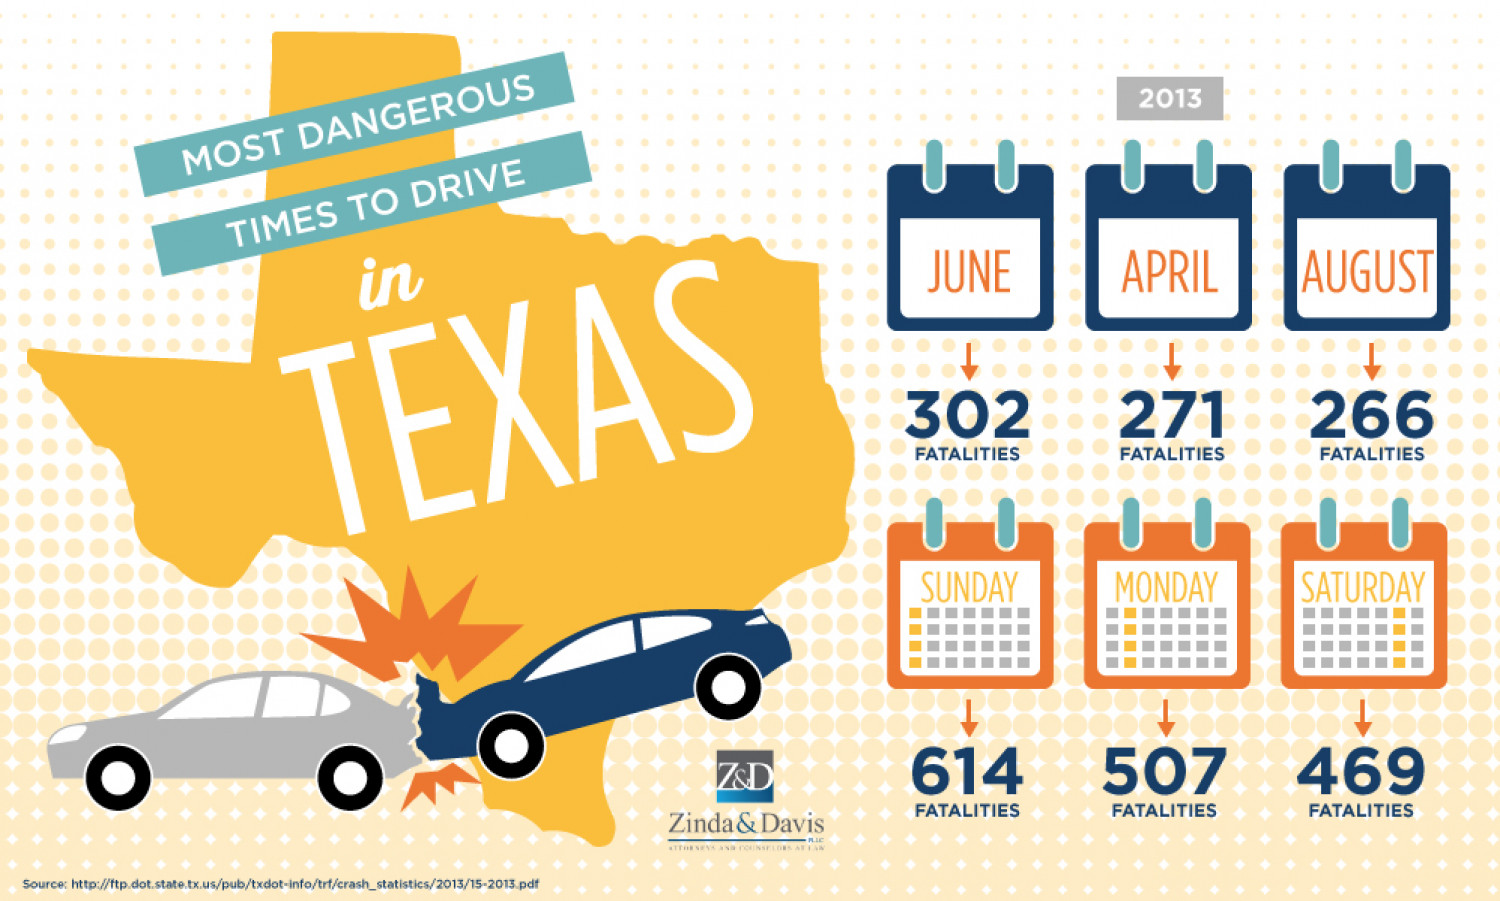 Most Dangerous Times to Drive in Texas Infographic